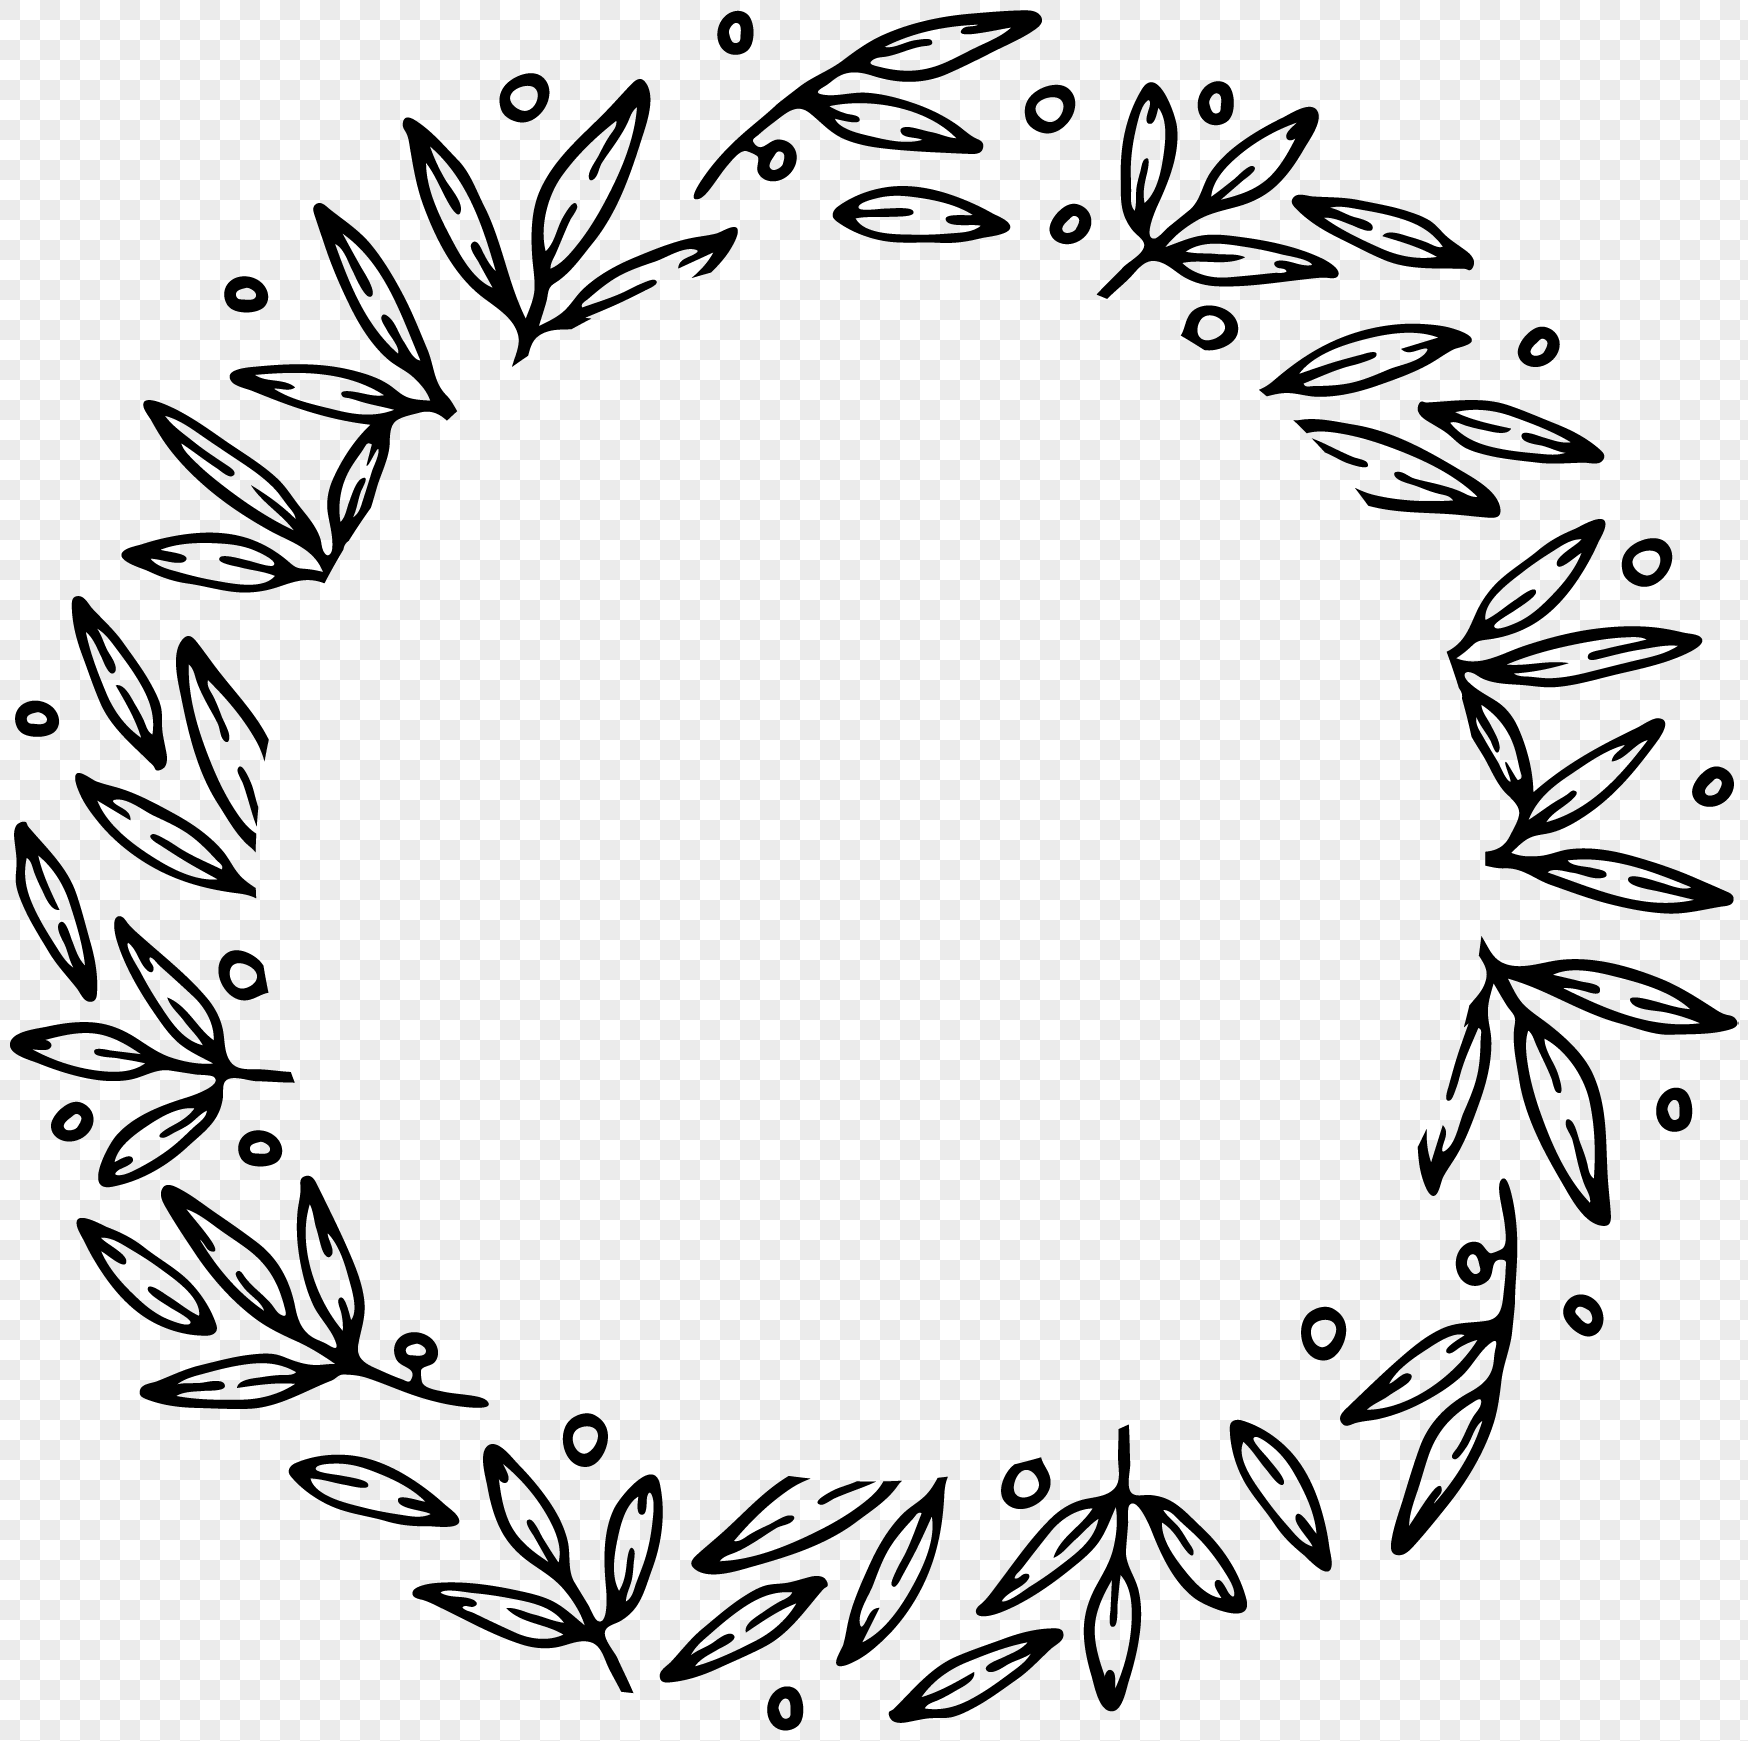 hand drawn black line drawing leaf lace wreath png image picture